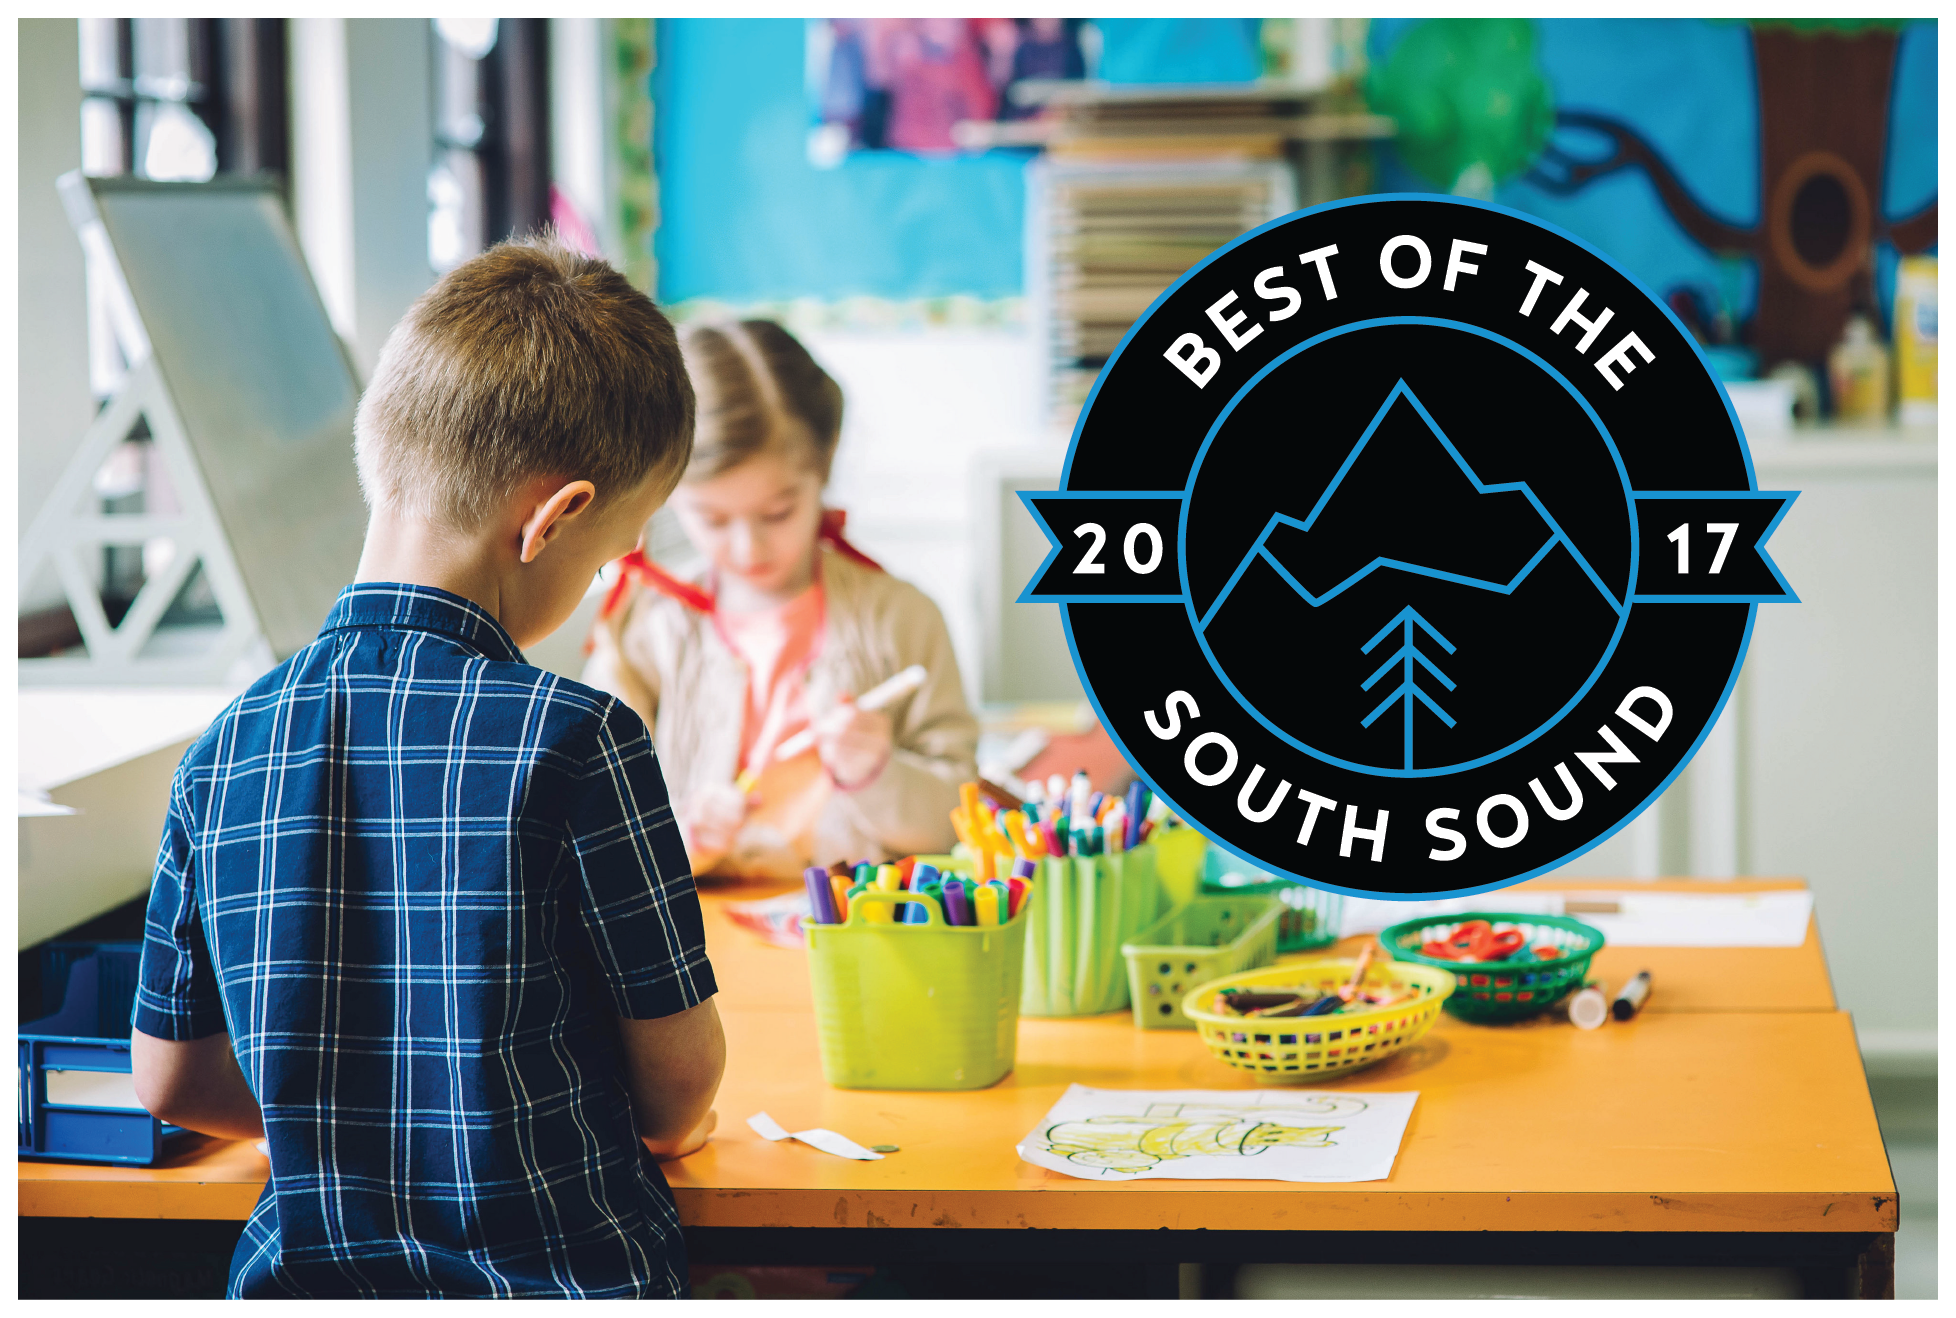 Voted Best Preschool in the South Sound 2017